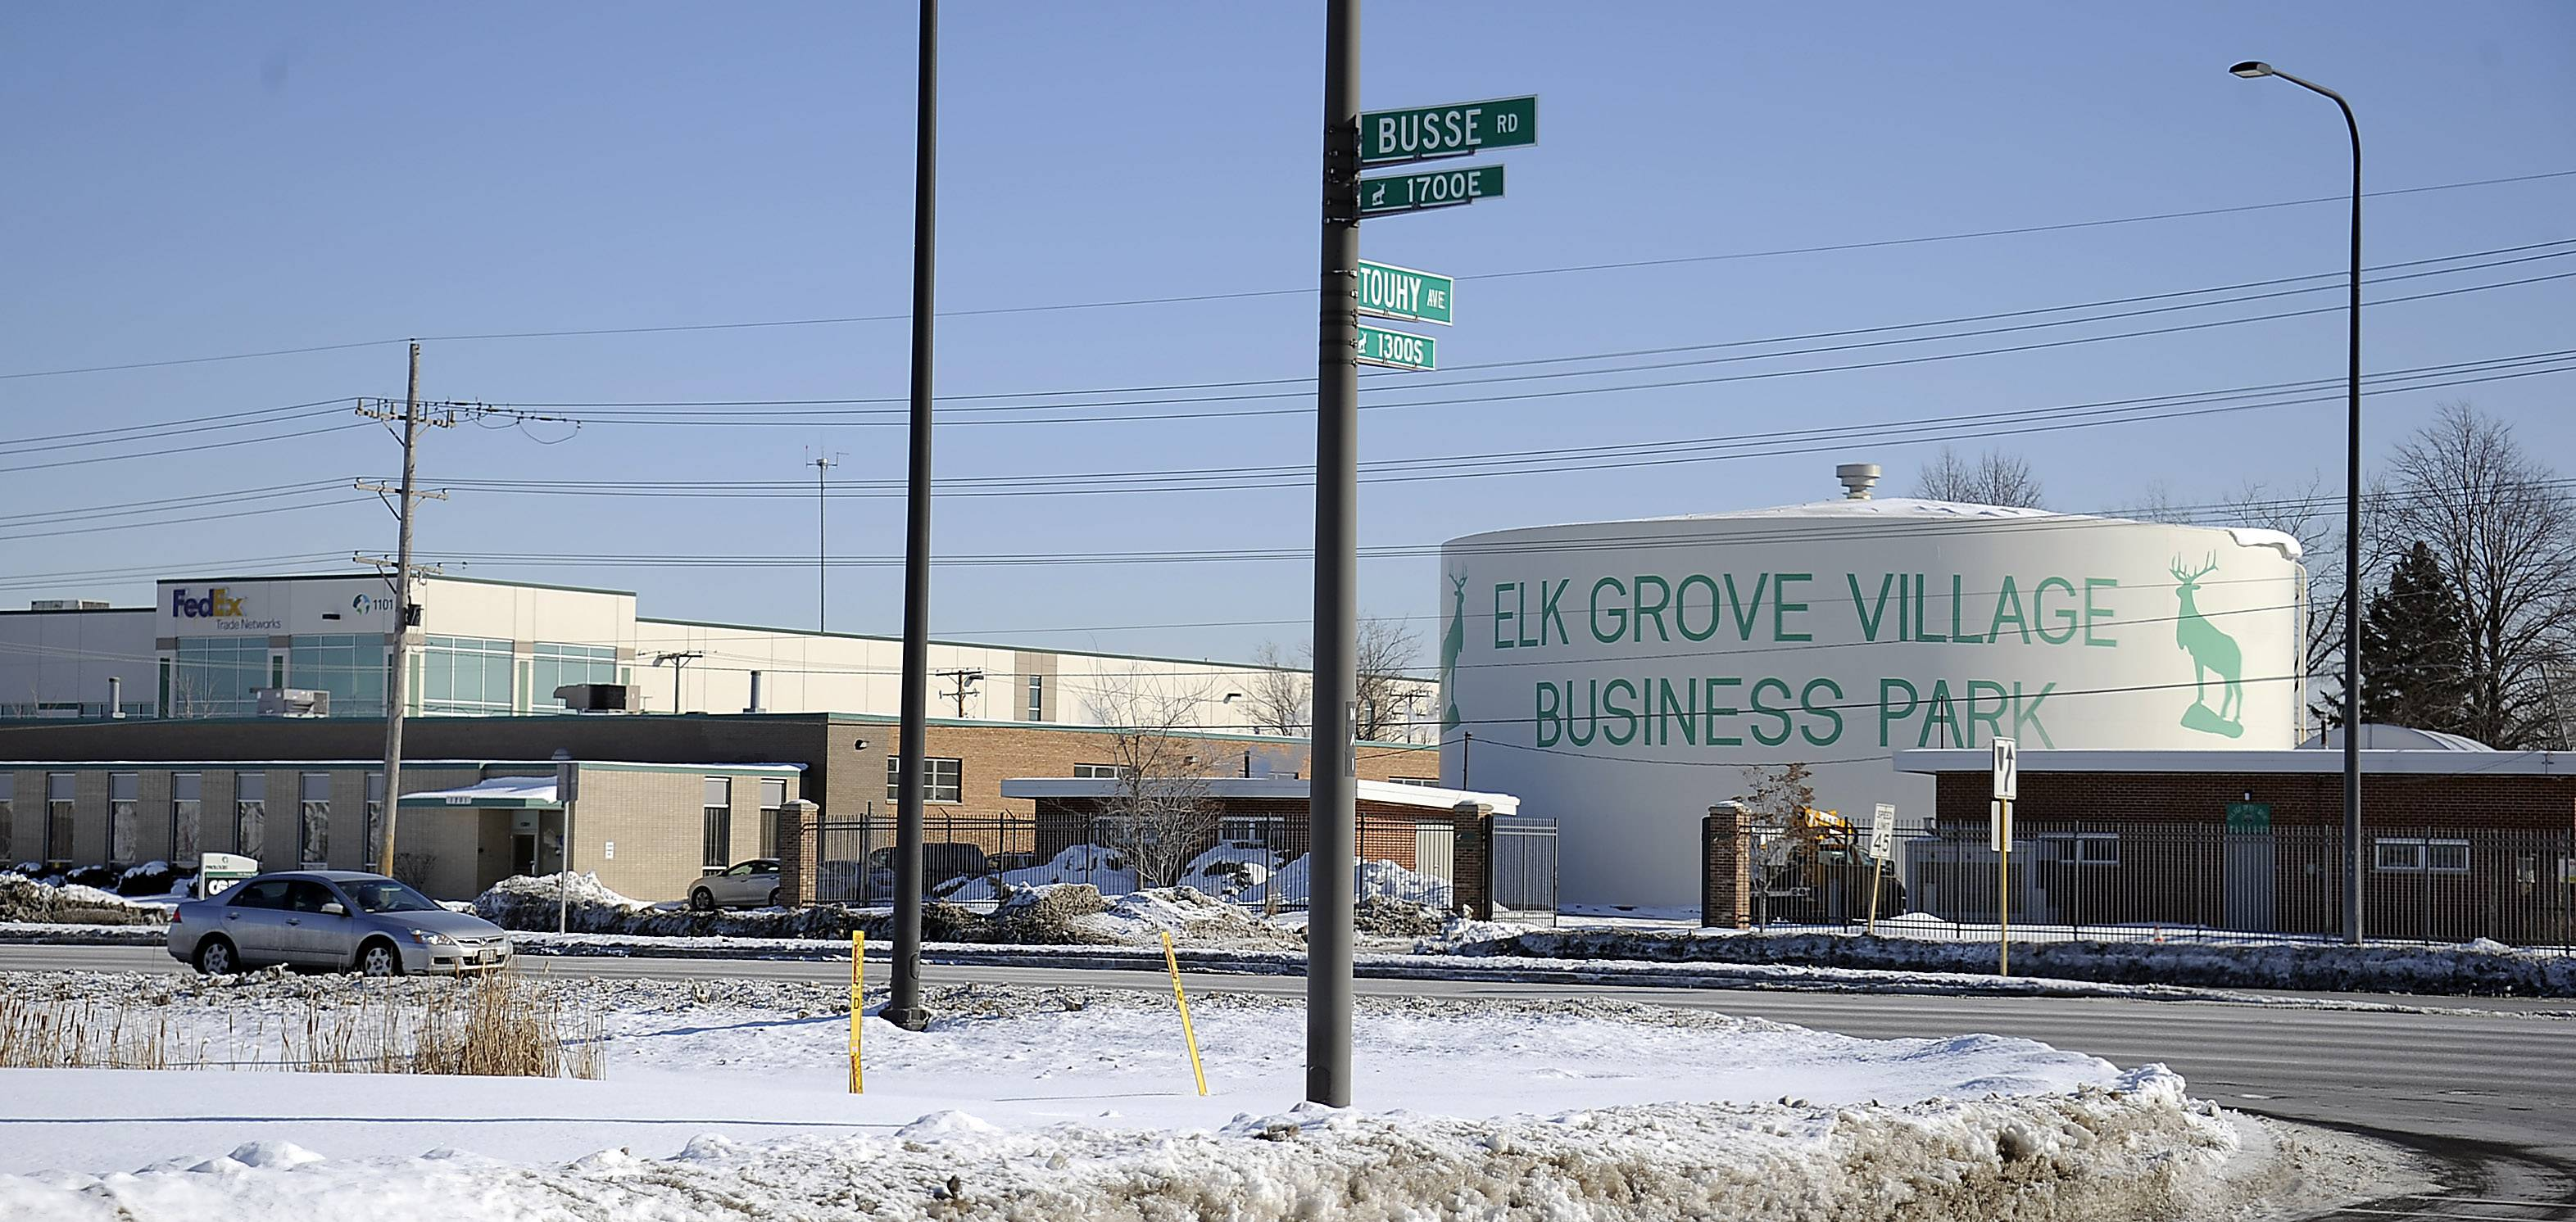 Elk Grove Village officials are proposing a tax increment financing district for a 917-acre portion of the business park along the Busse Road and Elmhurst Road corridors.